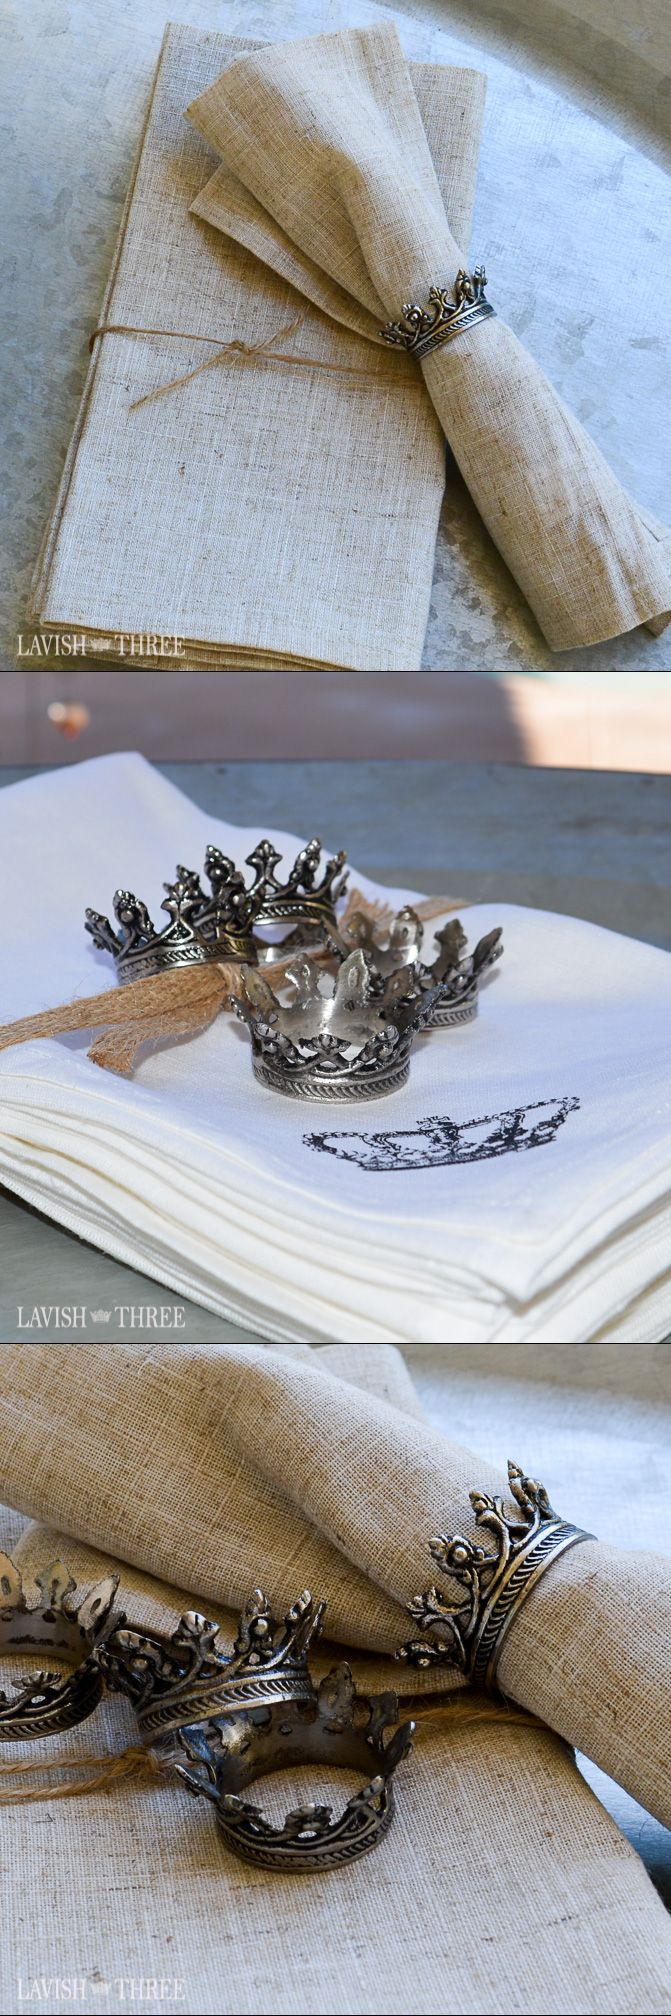 Majestic crown napkin rings.  Reproductions of antique pieces, they are hand-made by artisans using old world techniques. Explore our entire collection of home decor, gifts and jewelry to lavish your heart, your soul and your home!